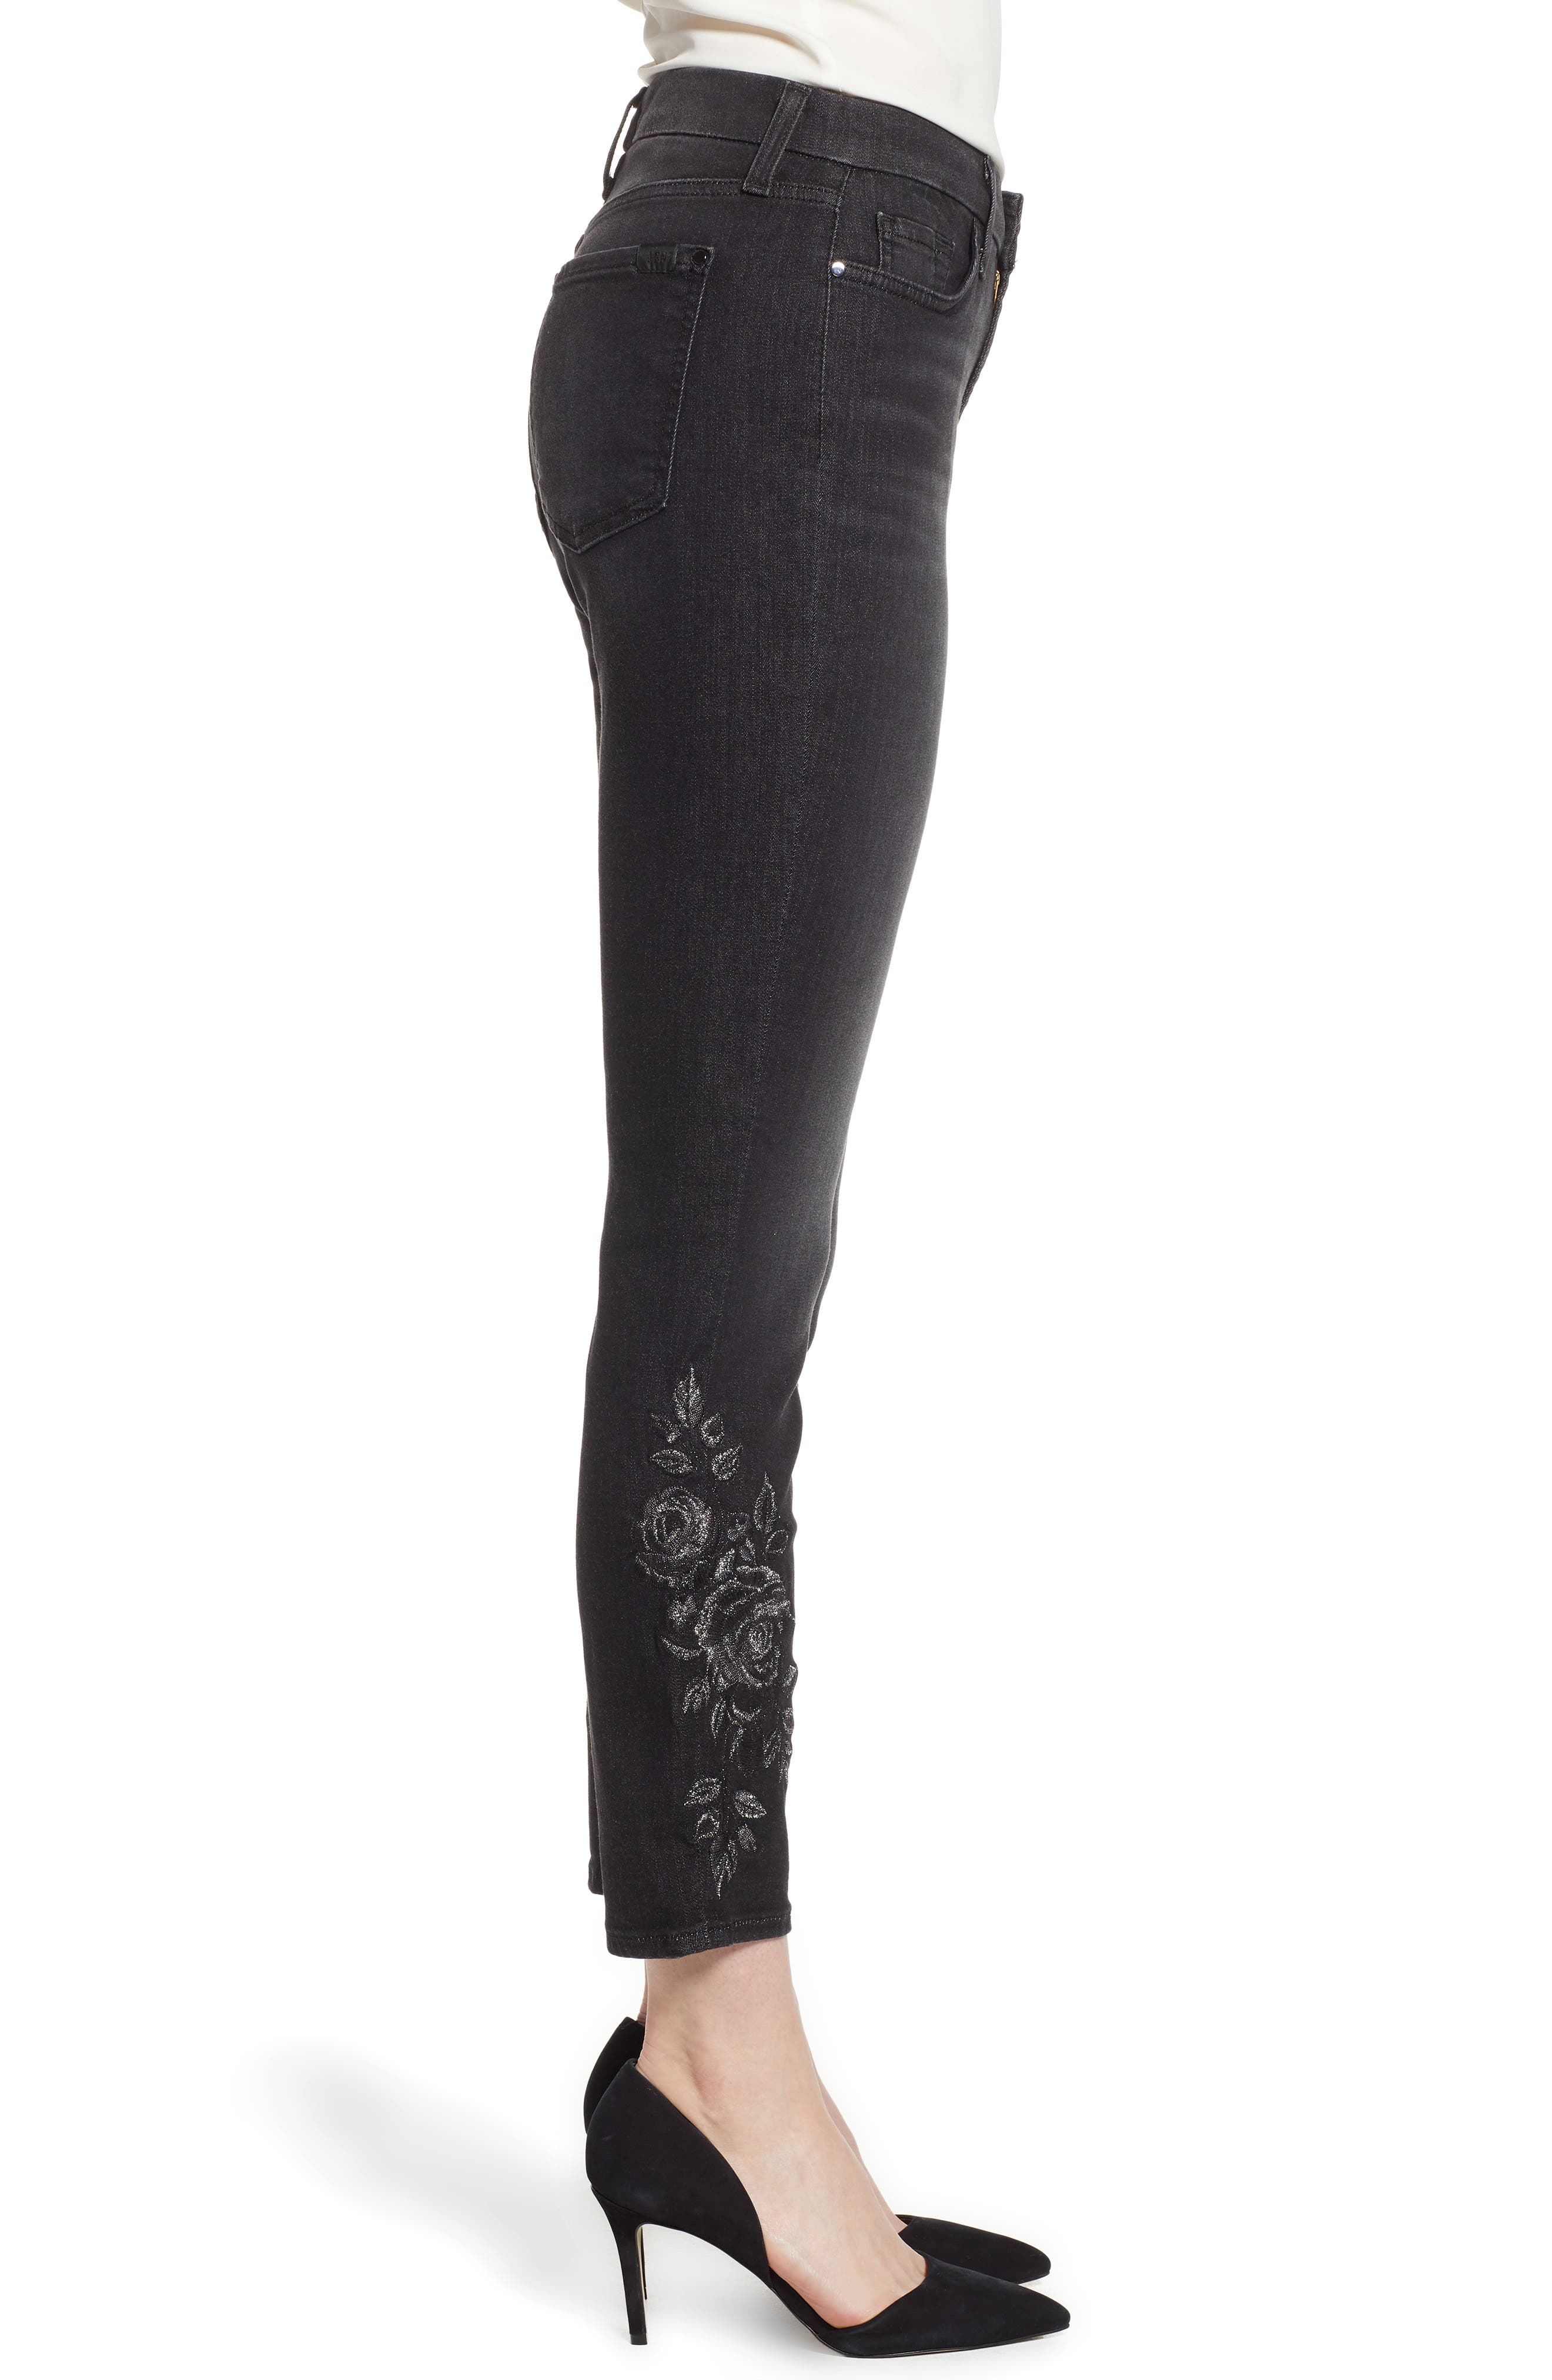 JEN7 BY 7 FOR ALL MANKIND, Embroidered Ankle Skinny Jeans, Alternate thumbnail 4, color, RICHE TOUCH AGED BLACK